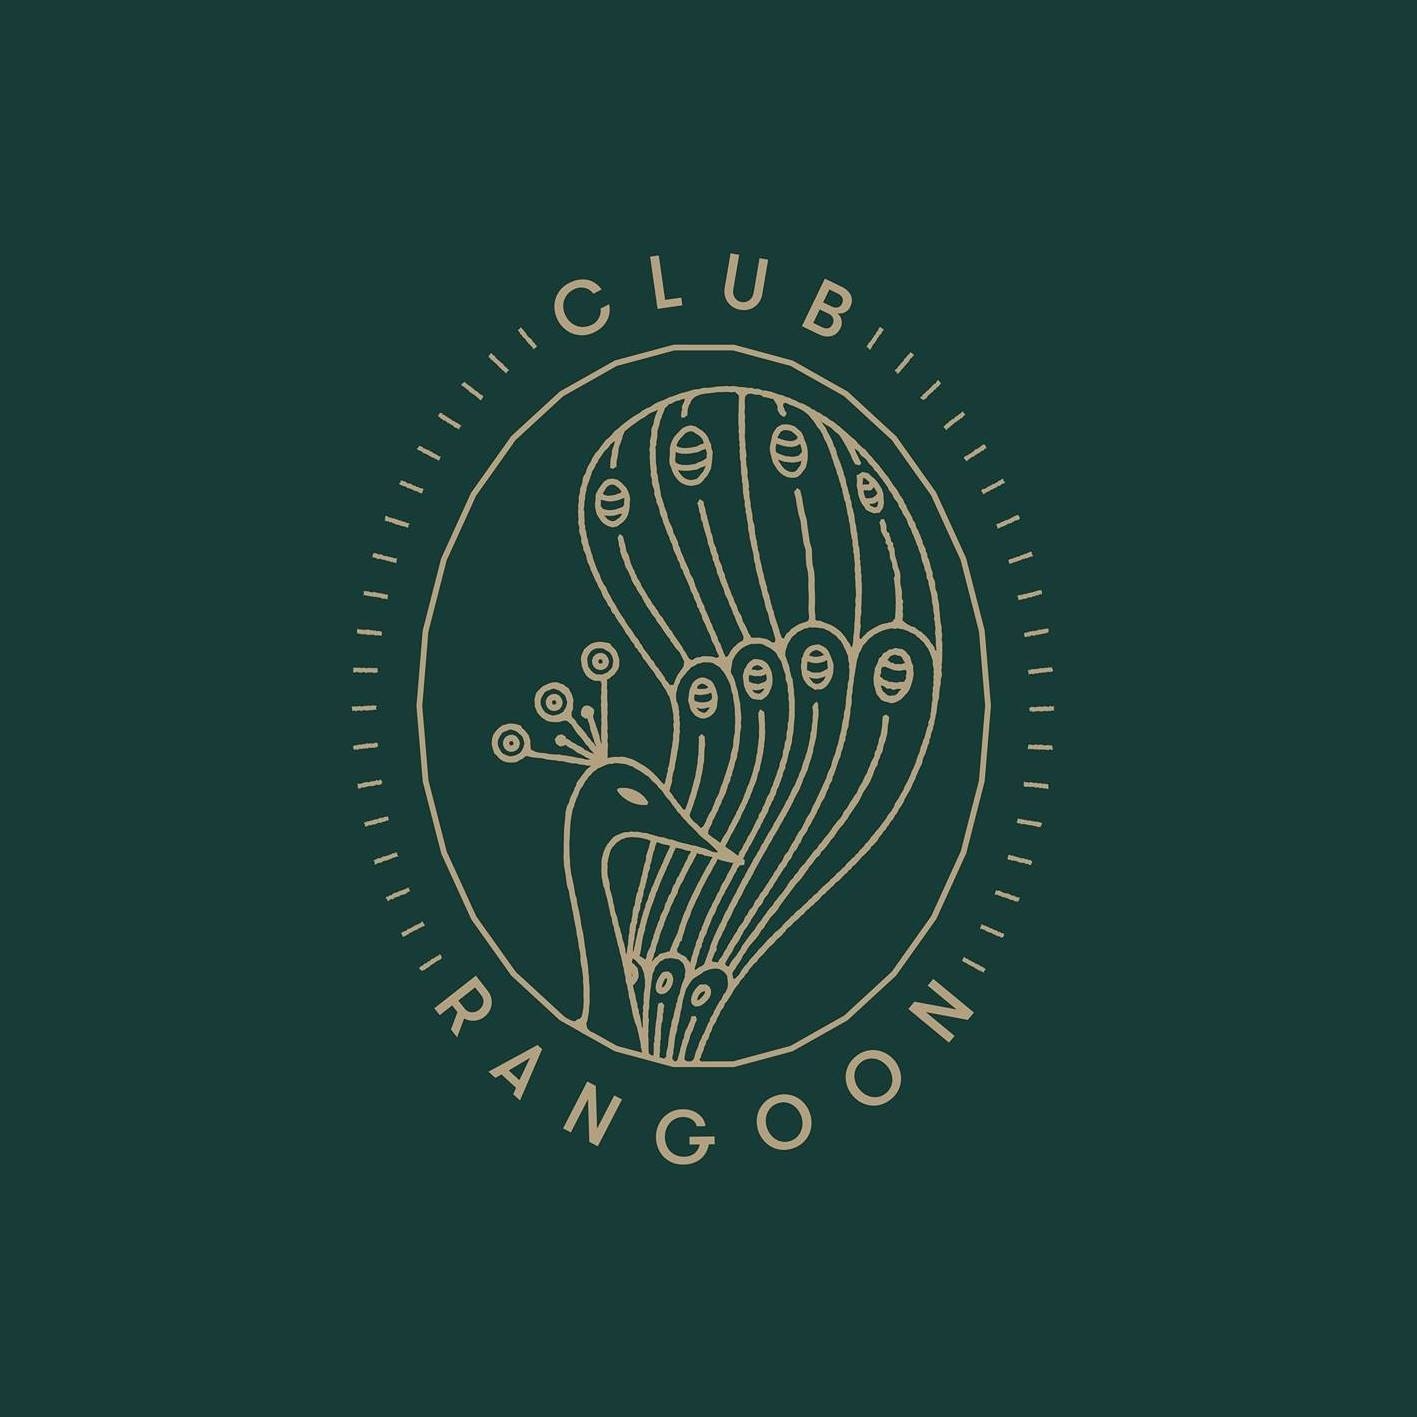 Club Rangoon